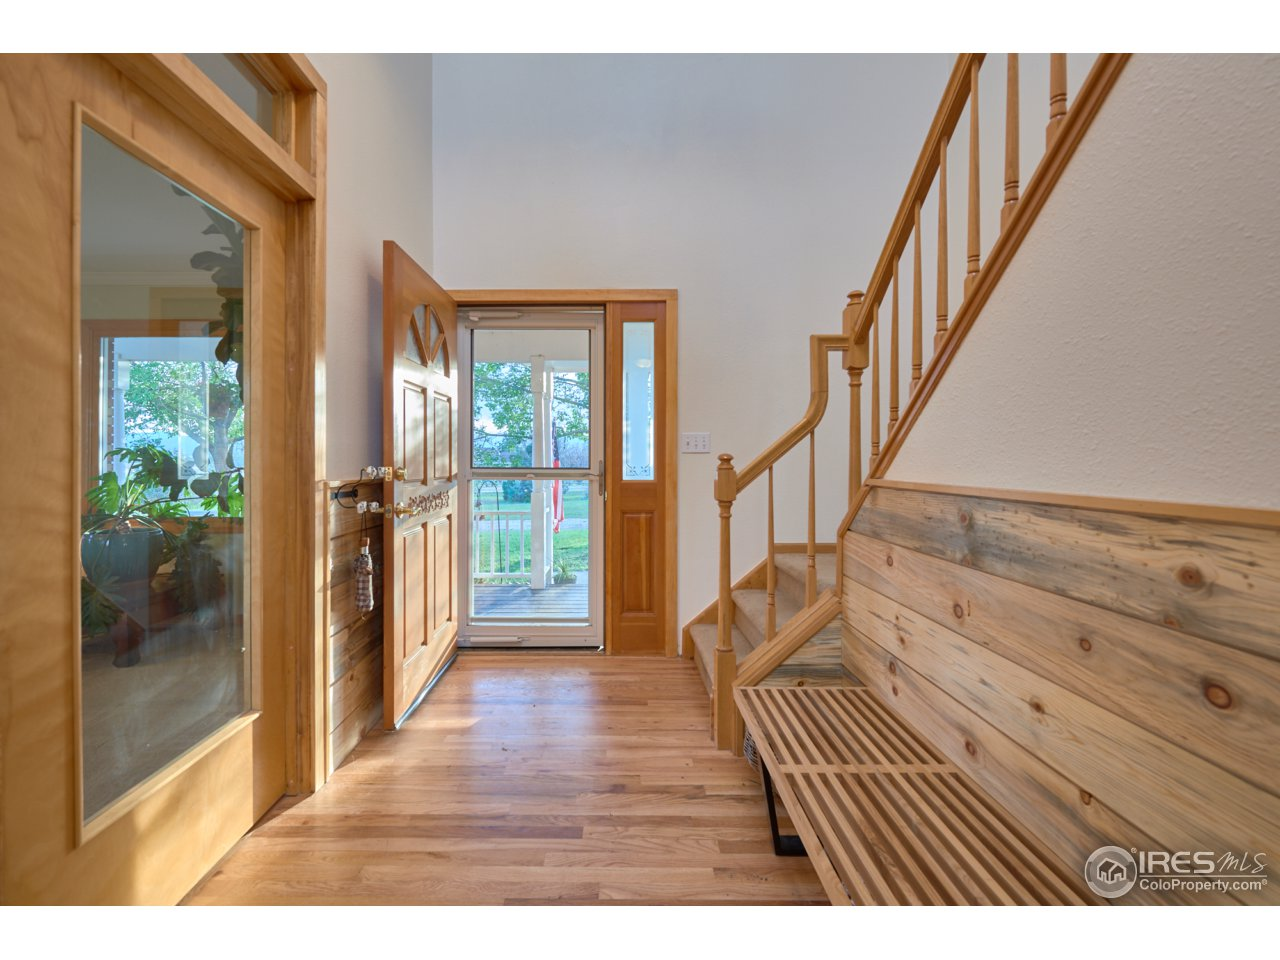 Large entry with wood accents